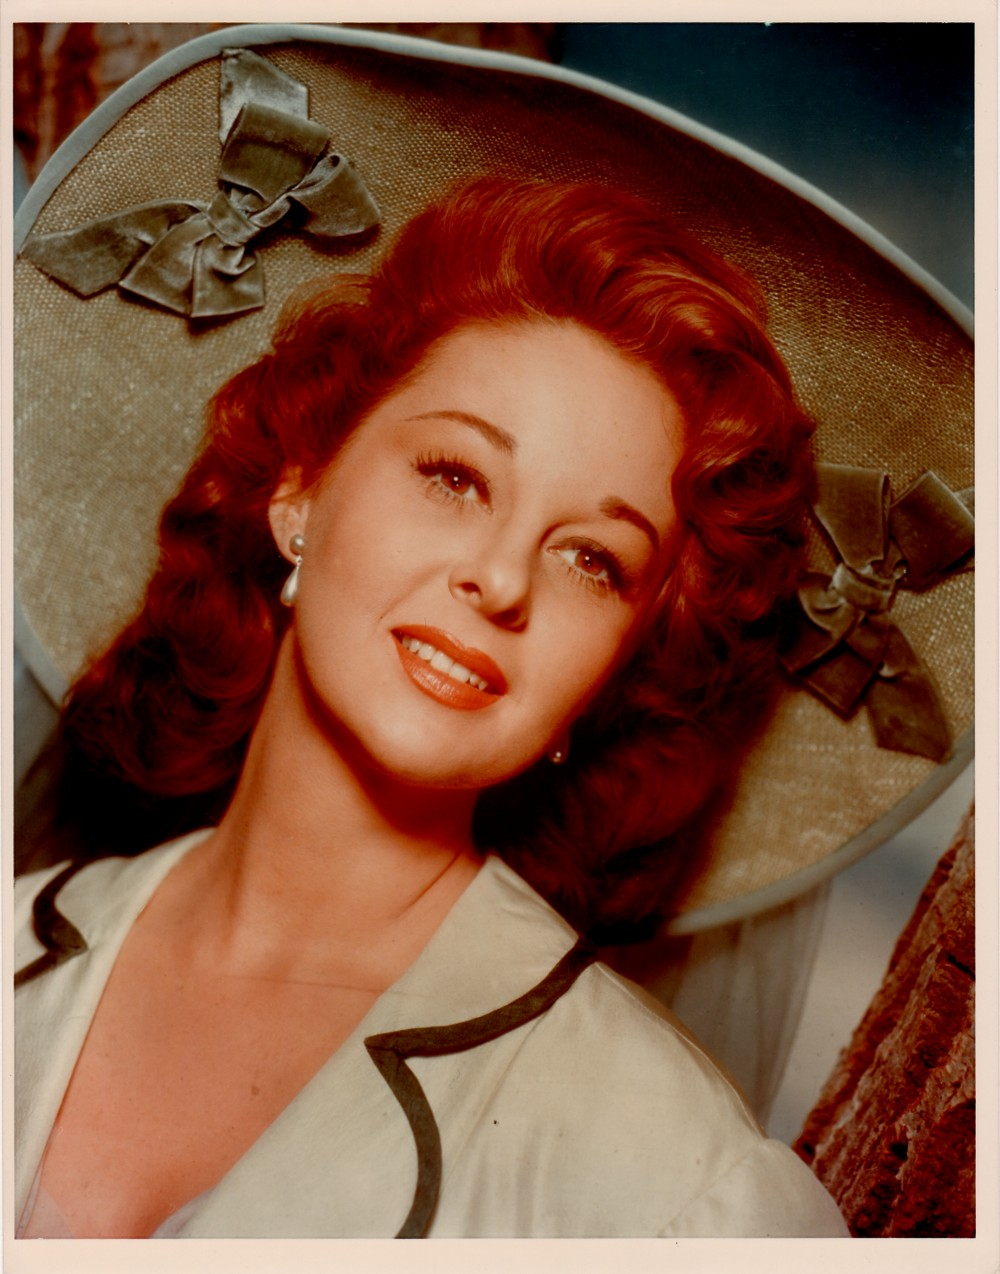 susan hayward imagessusan hayward sons, susan hayward, susan hayward photos, susan hayward i want to live youtube, susan hayward youtube, susan hayward quotes, susan hayward backstreet, susan hayward biography, susan hayward imdb, susan hayward i want to live, susan hayward measurements, susan hayward movies list, susan hayward vintage, susan hayward movies youtube, susan hayward feet, susan hayward net worth, susan hayward relationships, susan hayward gravesite, susan hayward images, susan hayward oscar